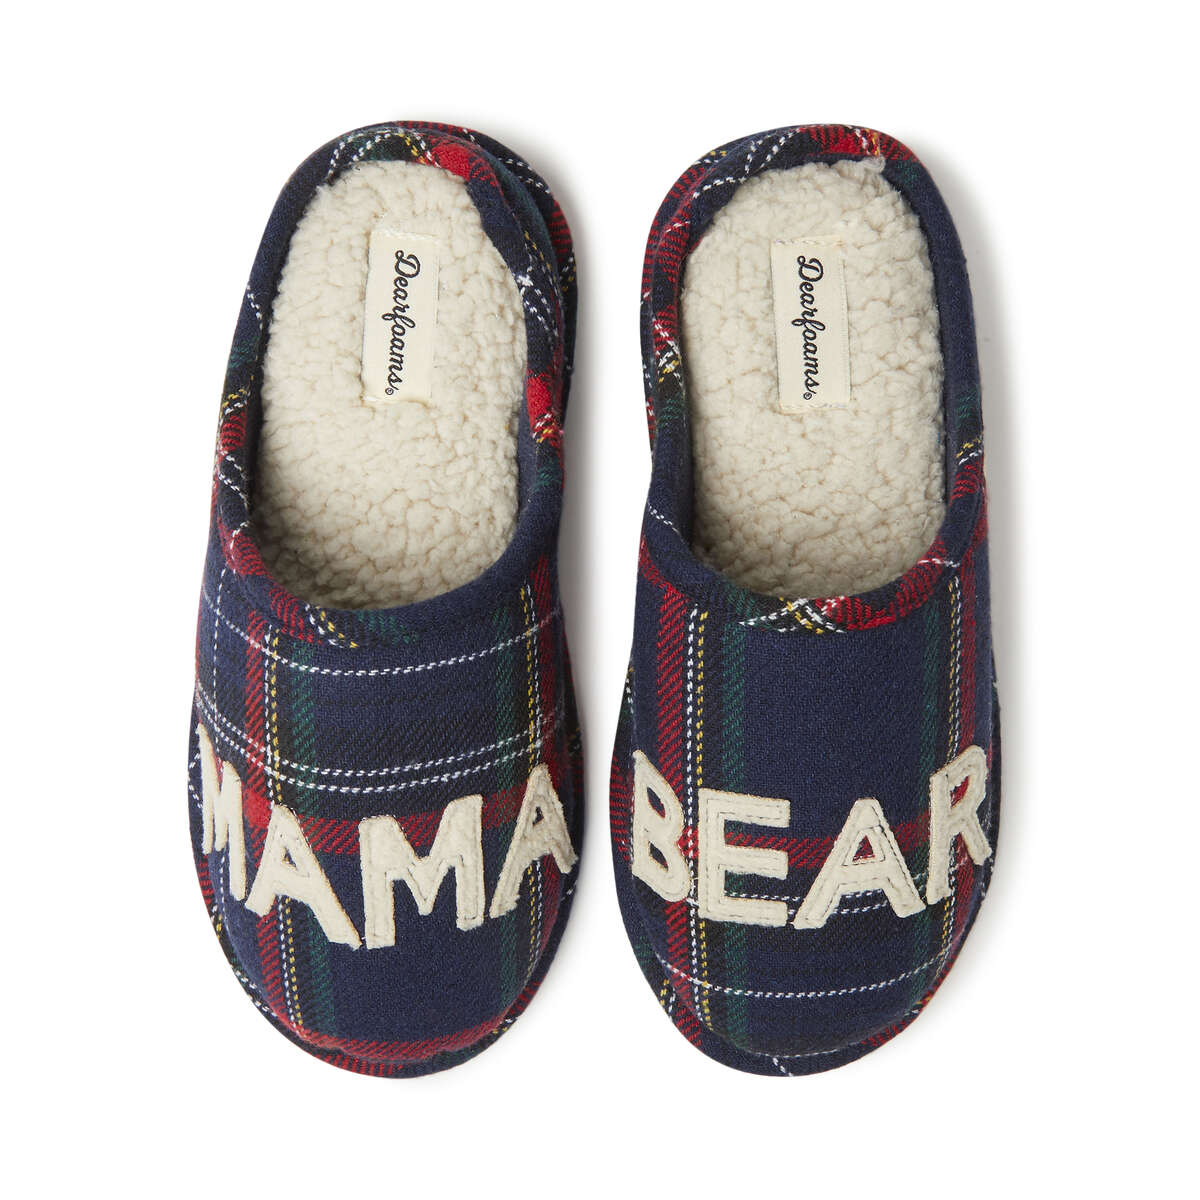 Women's Mama Bear Clog Slipper, $34 @dearfoams.com